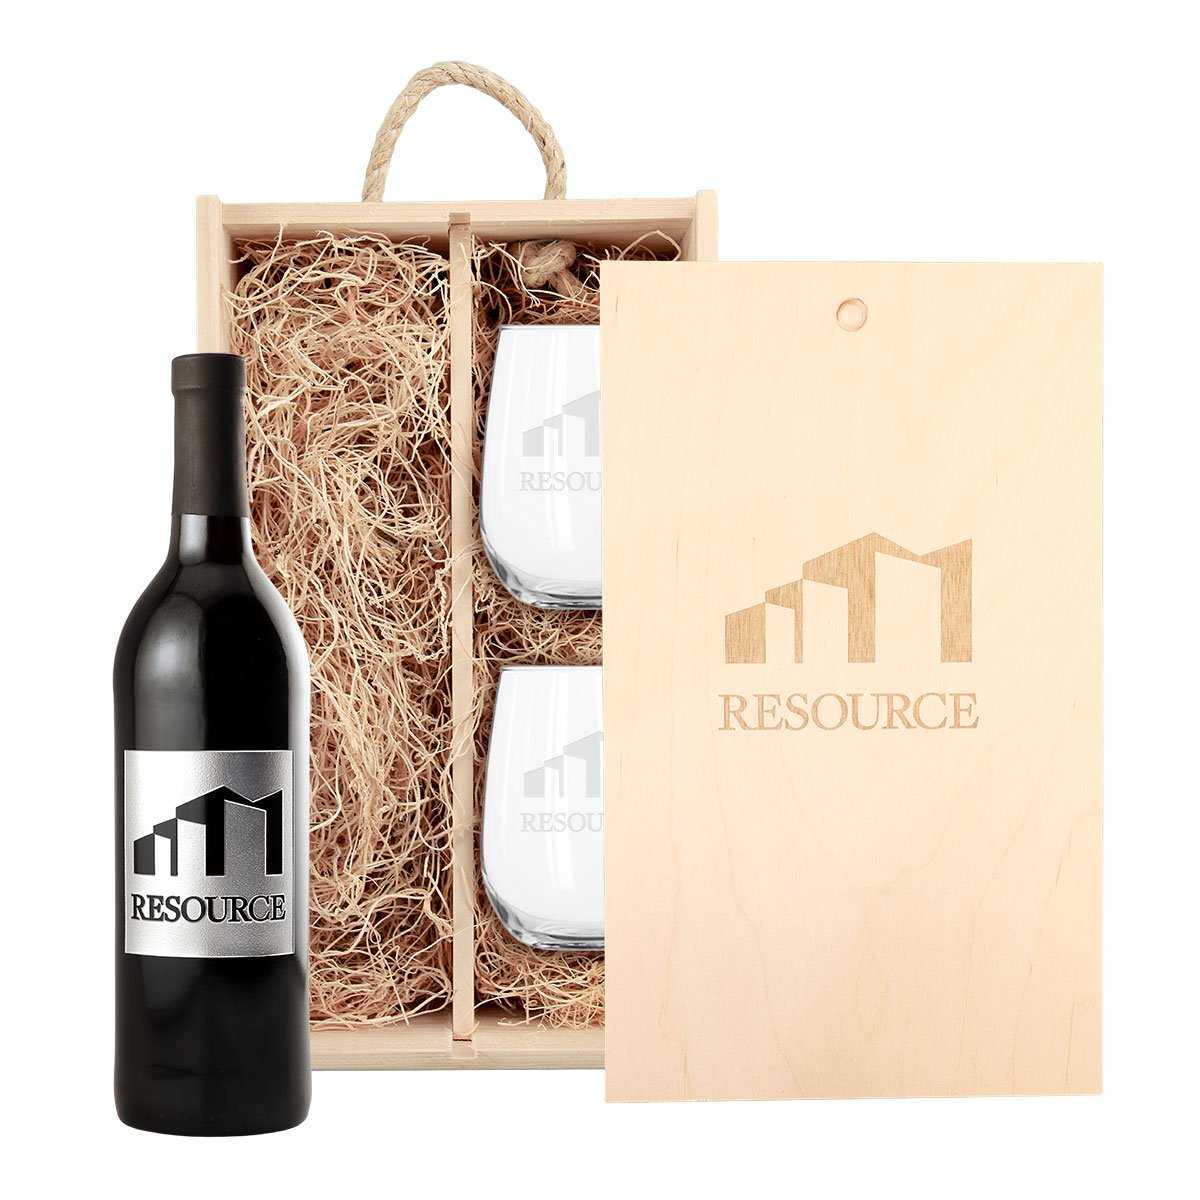 etched red wine bottle gift set for corporate gifts and customer appreciation gifts